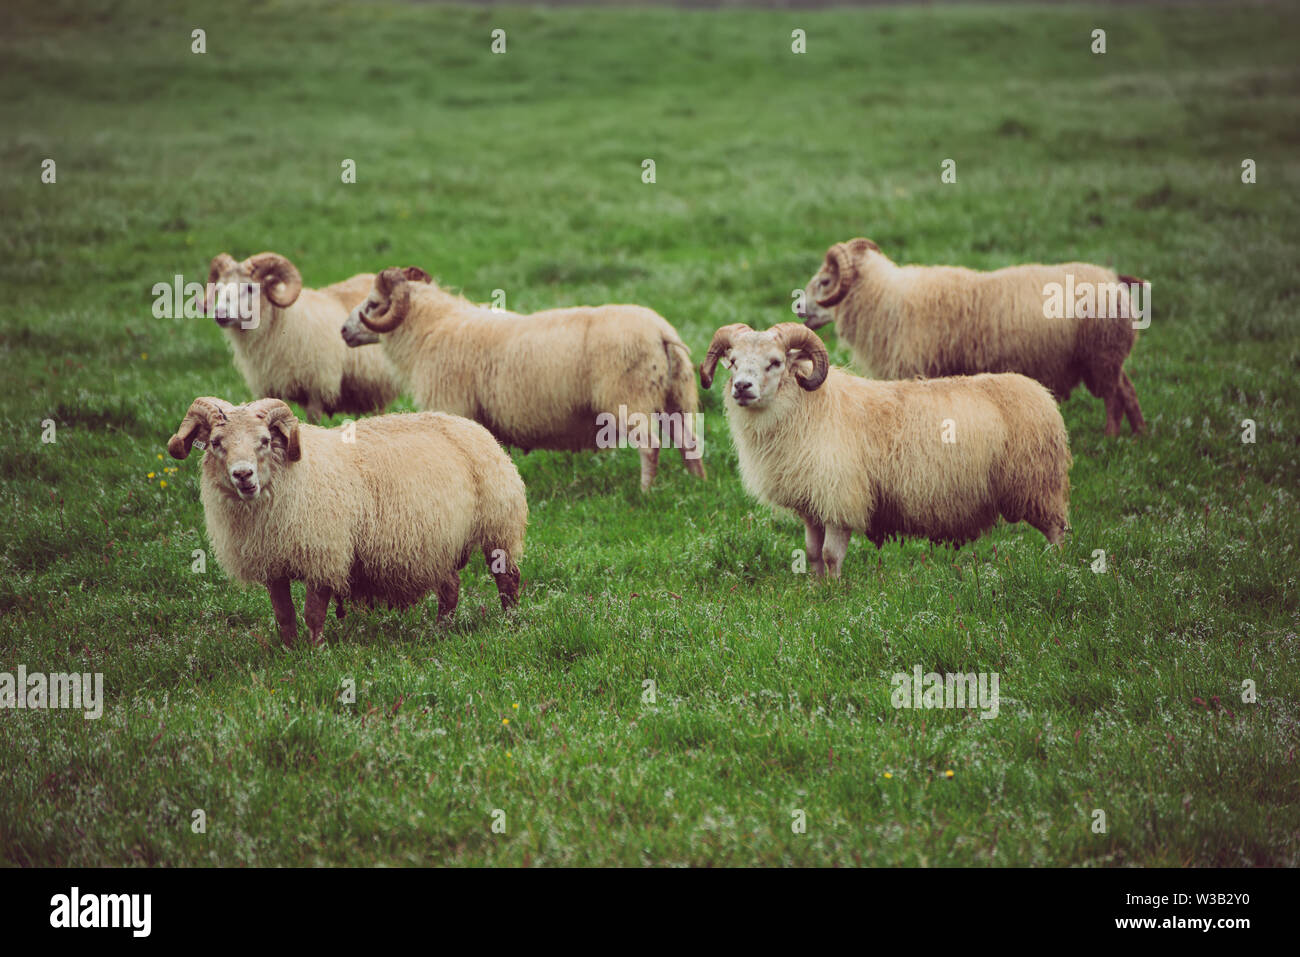 Sheep grazing in Iceland - Stock Image